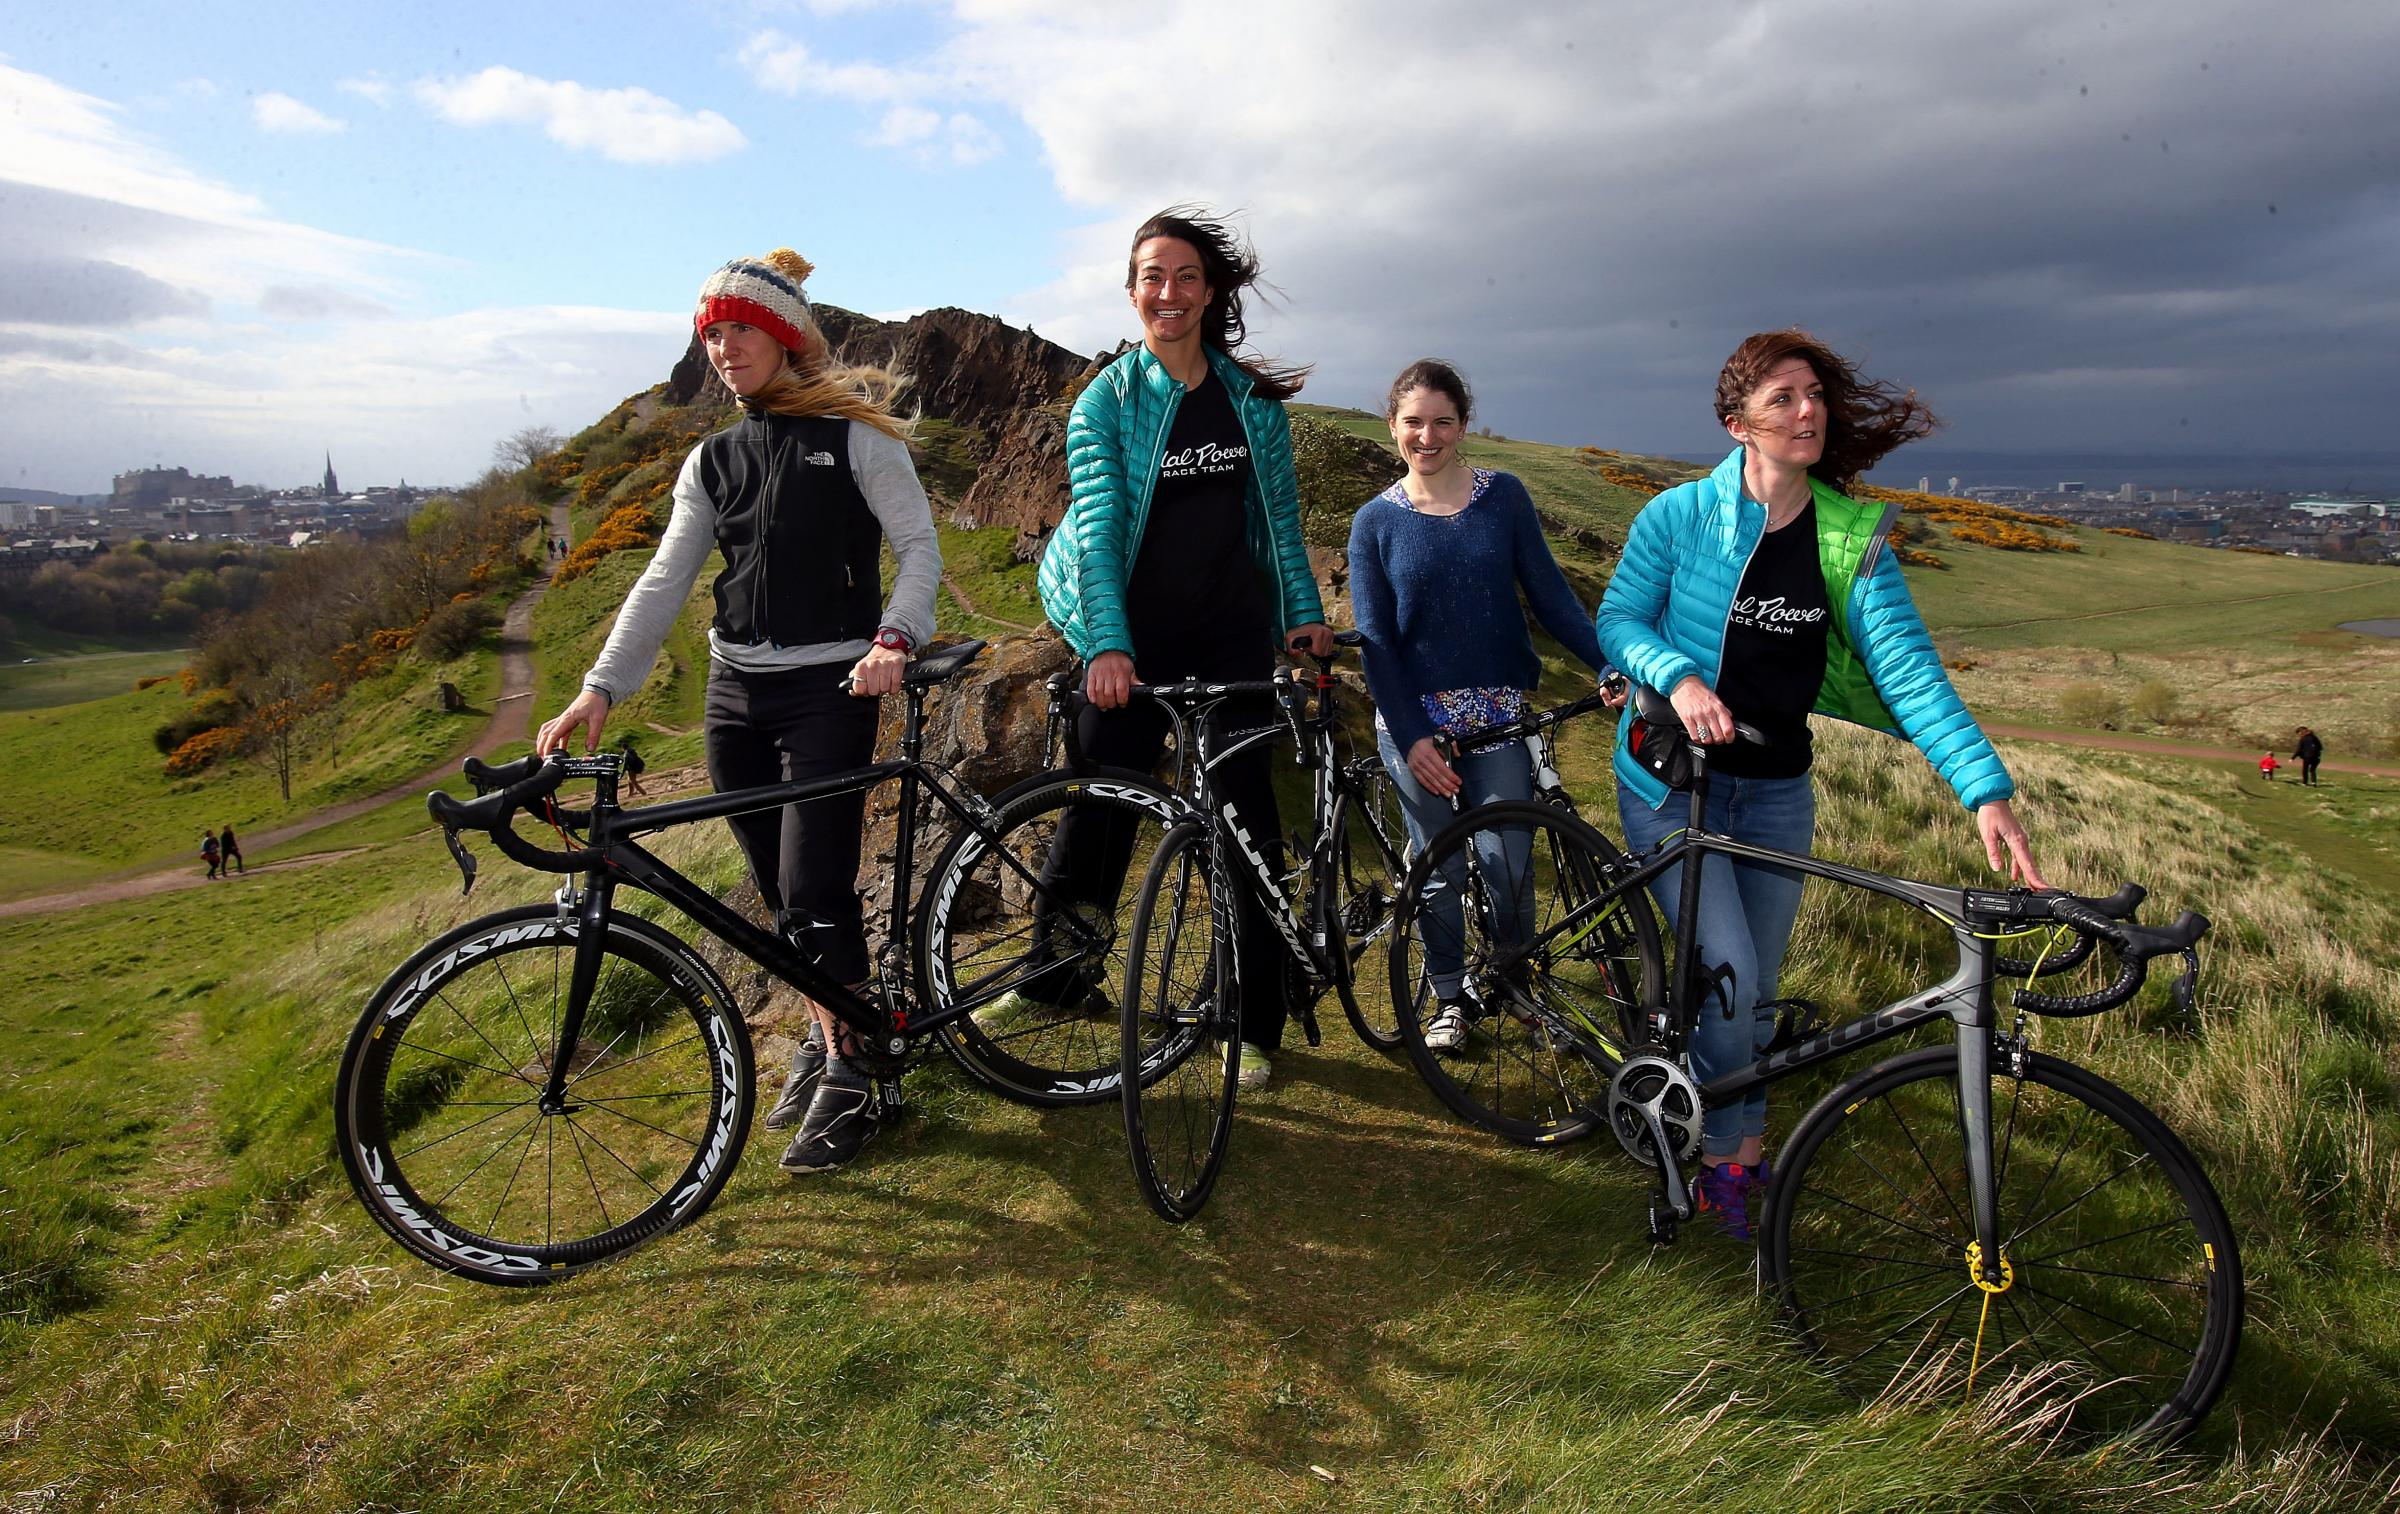 Members of the Adventure Syndicate team, from left, Lee Craigie, Joanne Thom, Zara Mair and Anne Ewing.